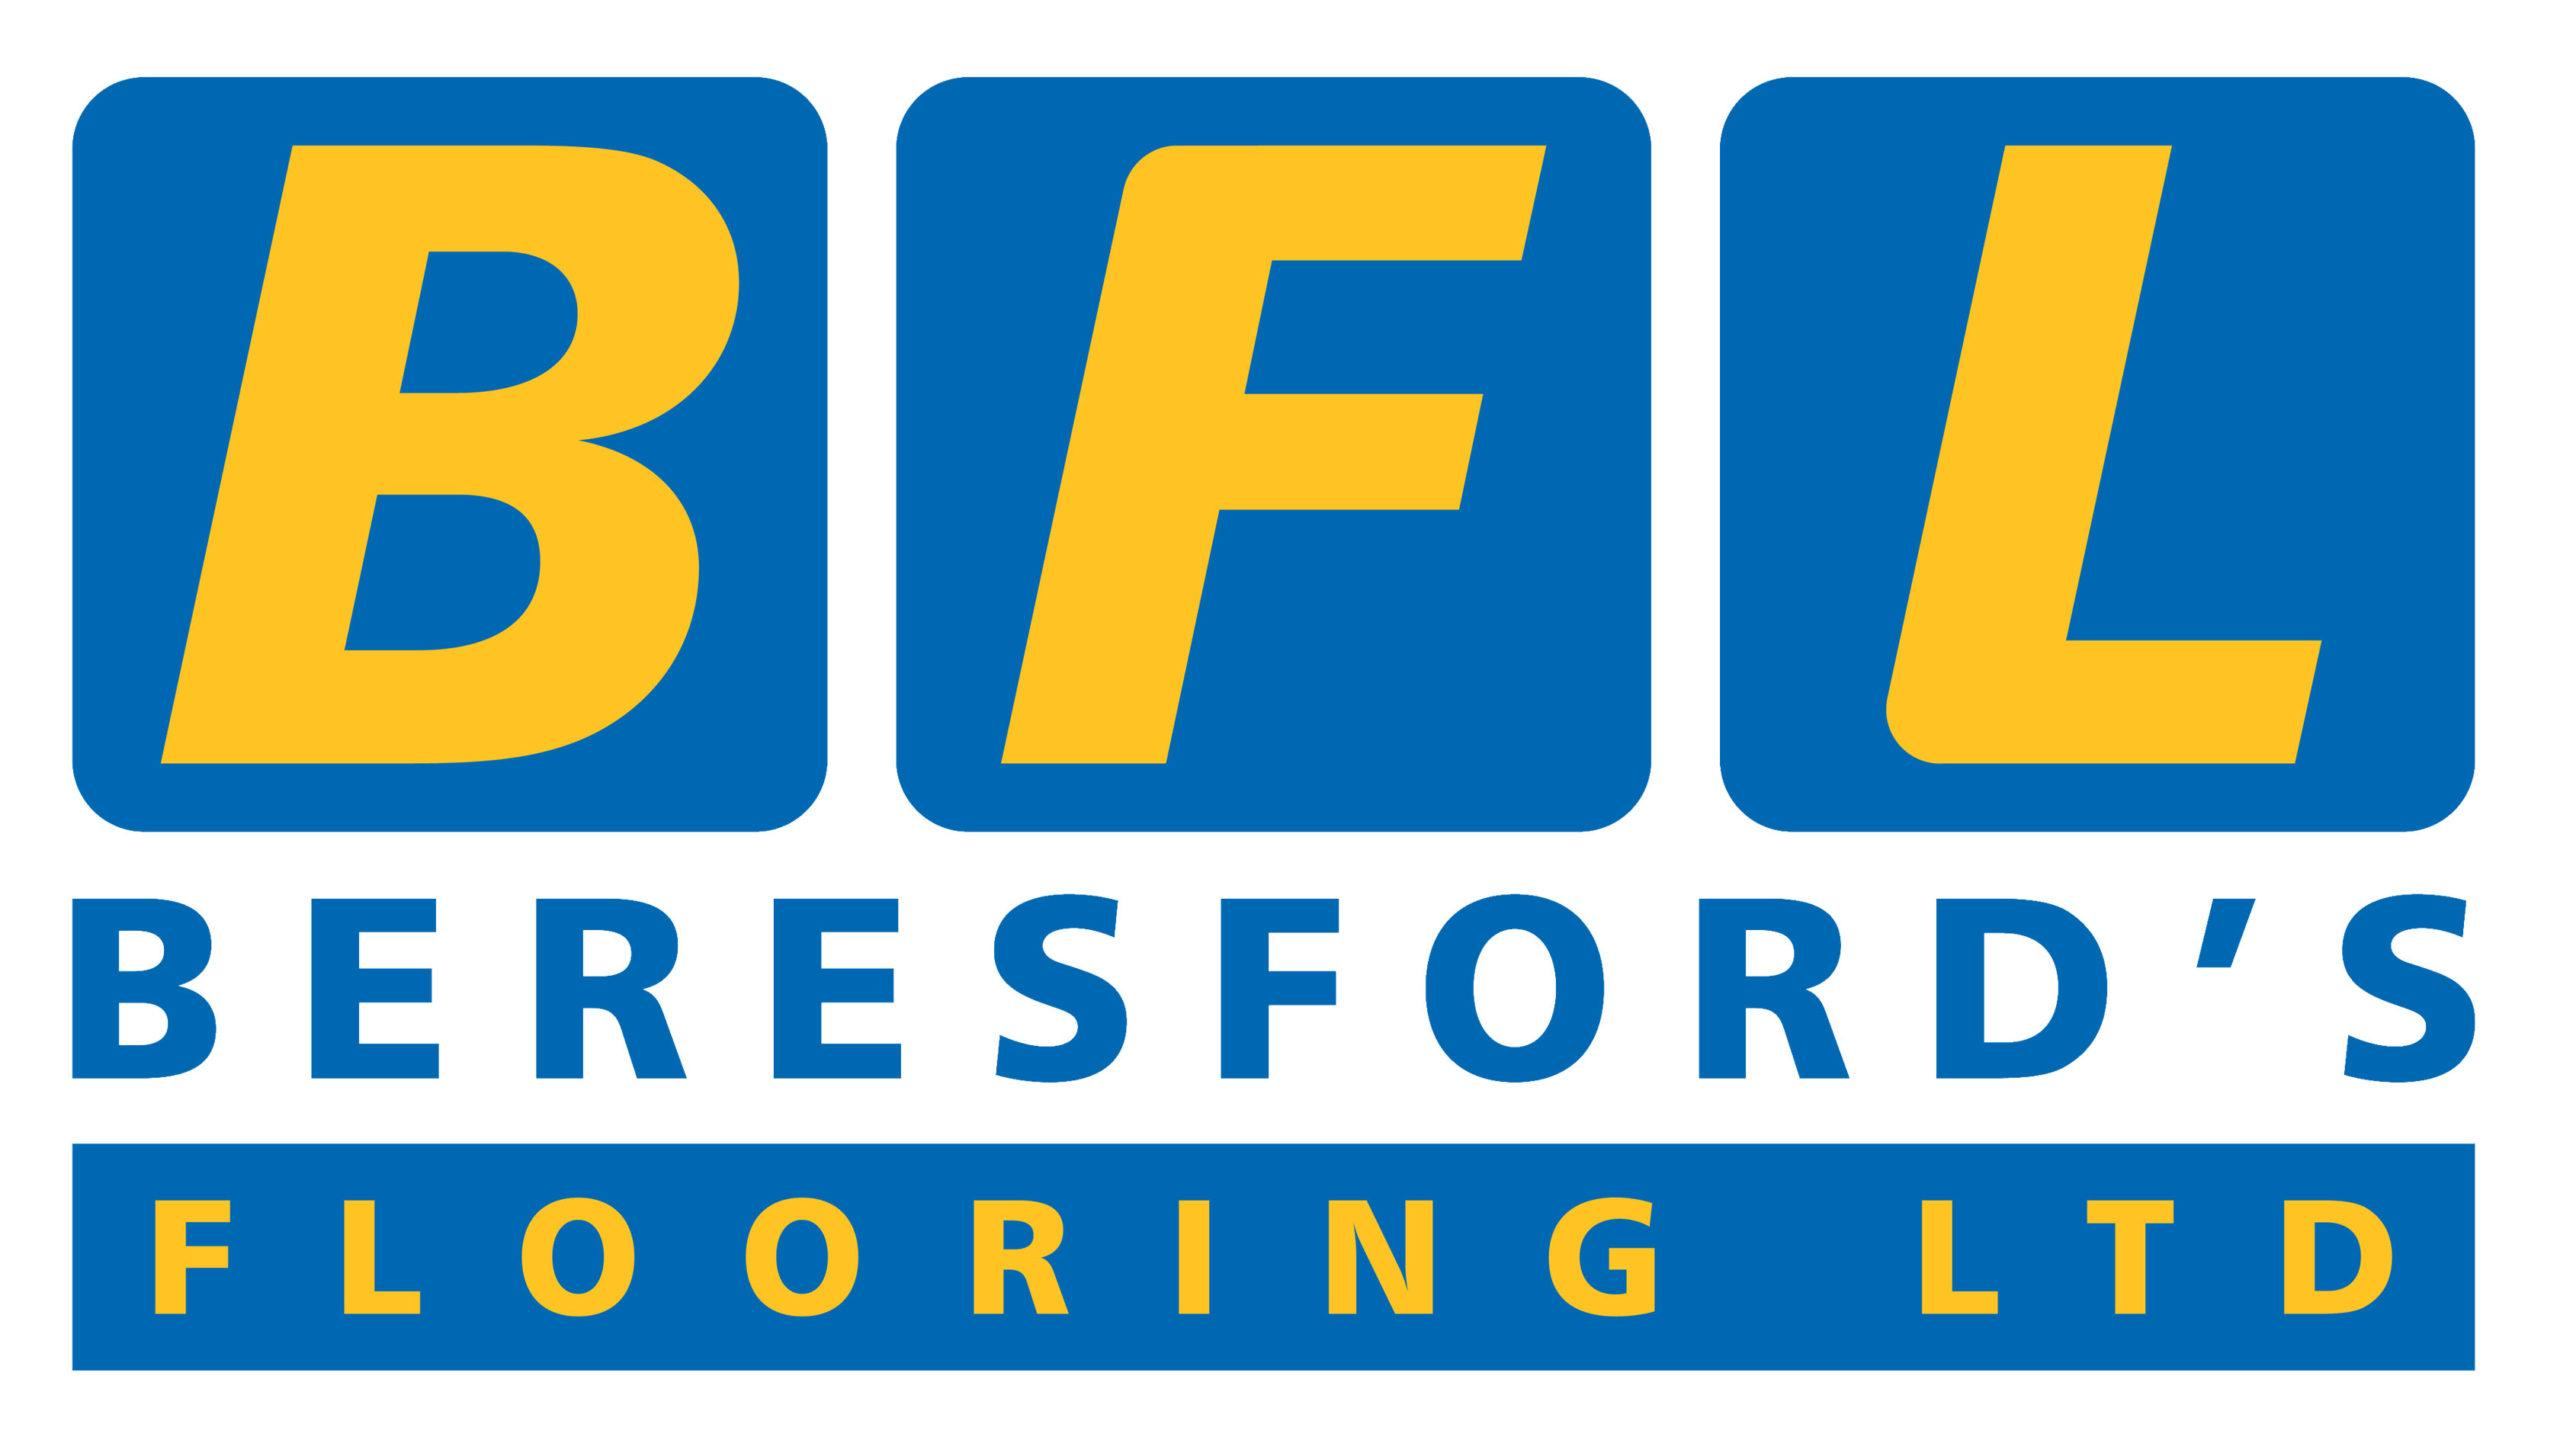 Beresford's Flooring LTD